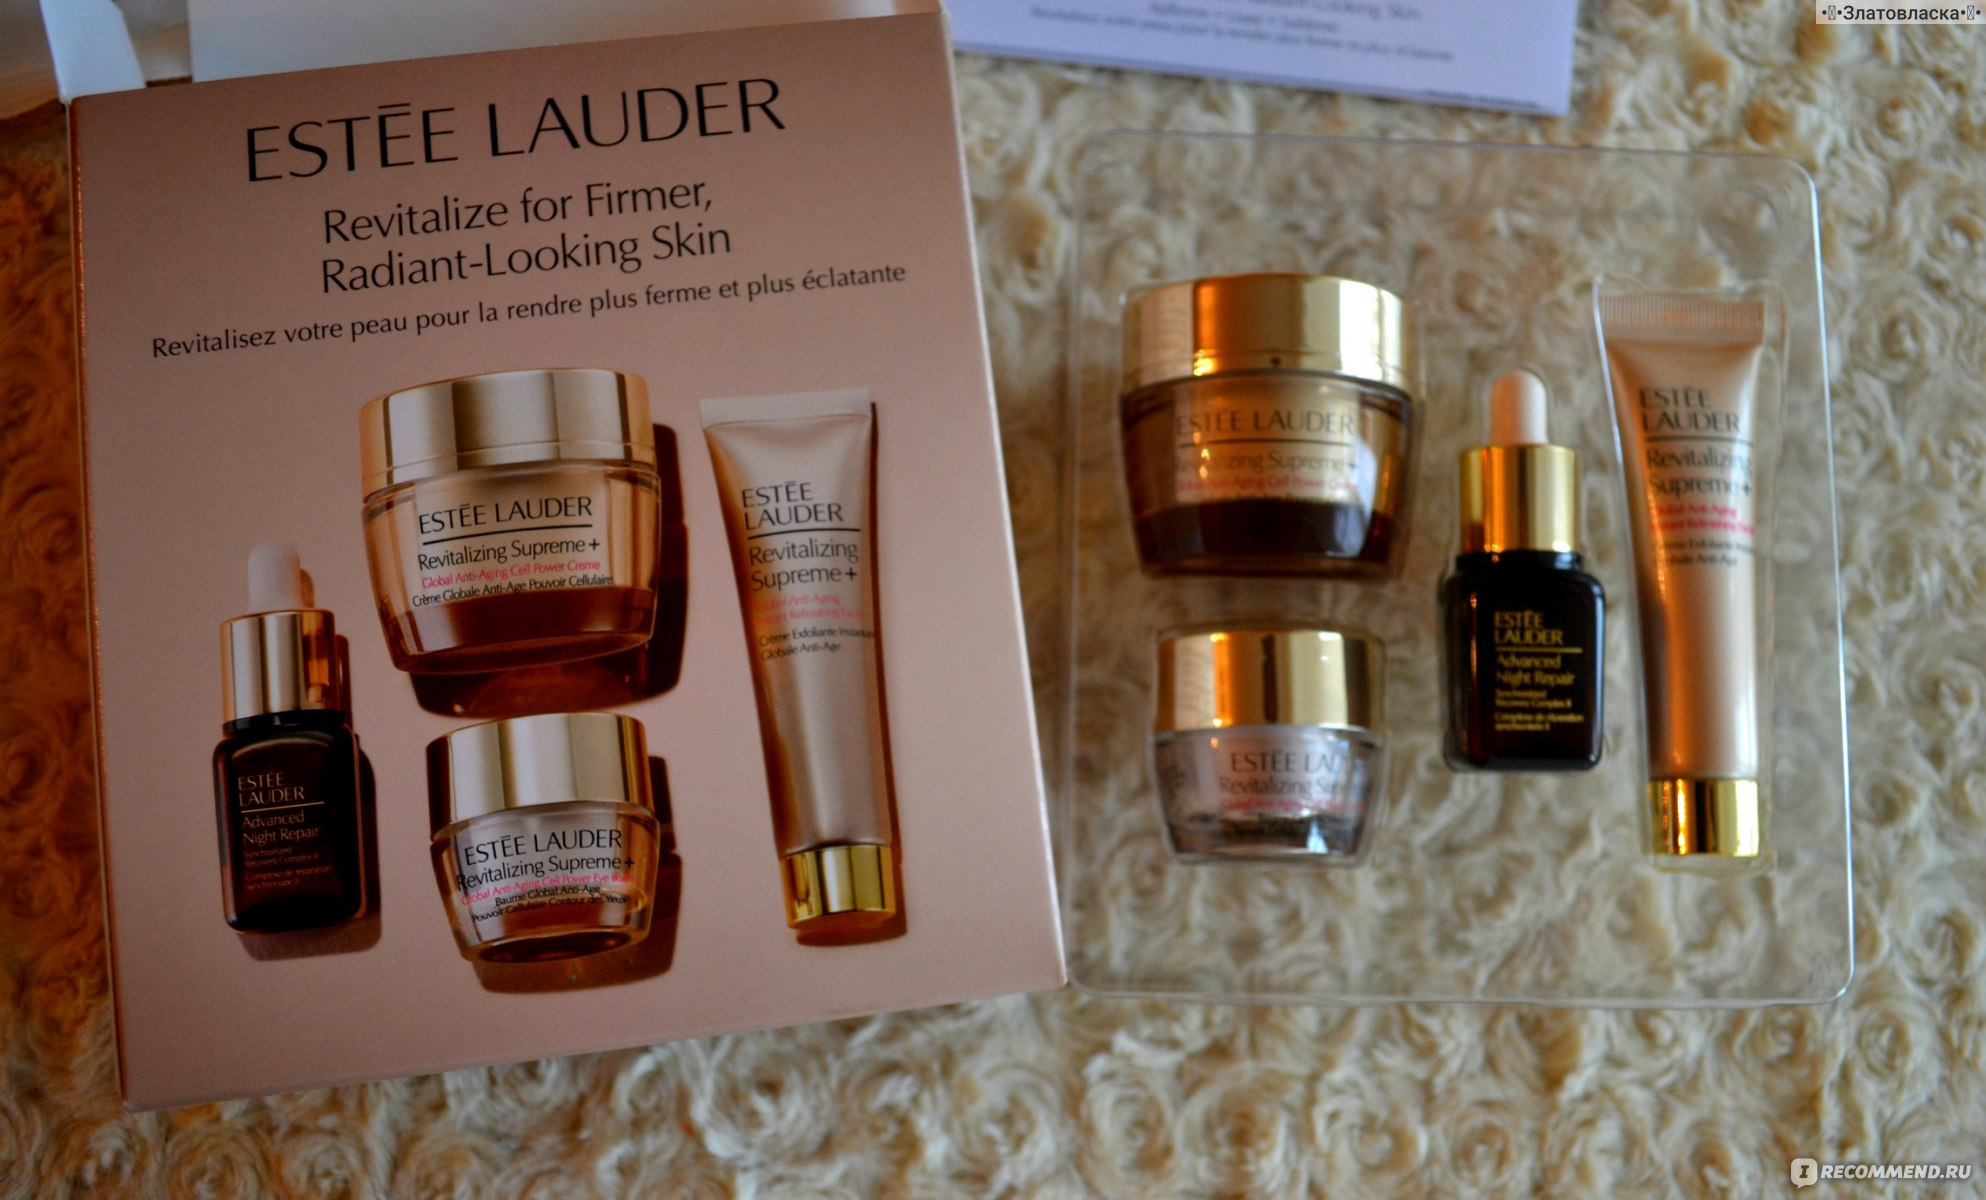 pest analysis of estee lauder Estee lauder simply looking at what the image projects, estee lauder is a brand that concern itself with the beauty of glamorous beauty the emphasis lies is elegant style and aspiration beauty ( estee lauder , 2009.